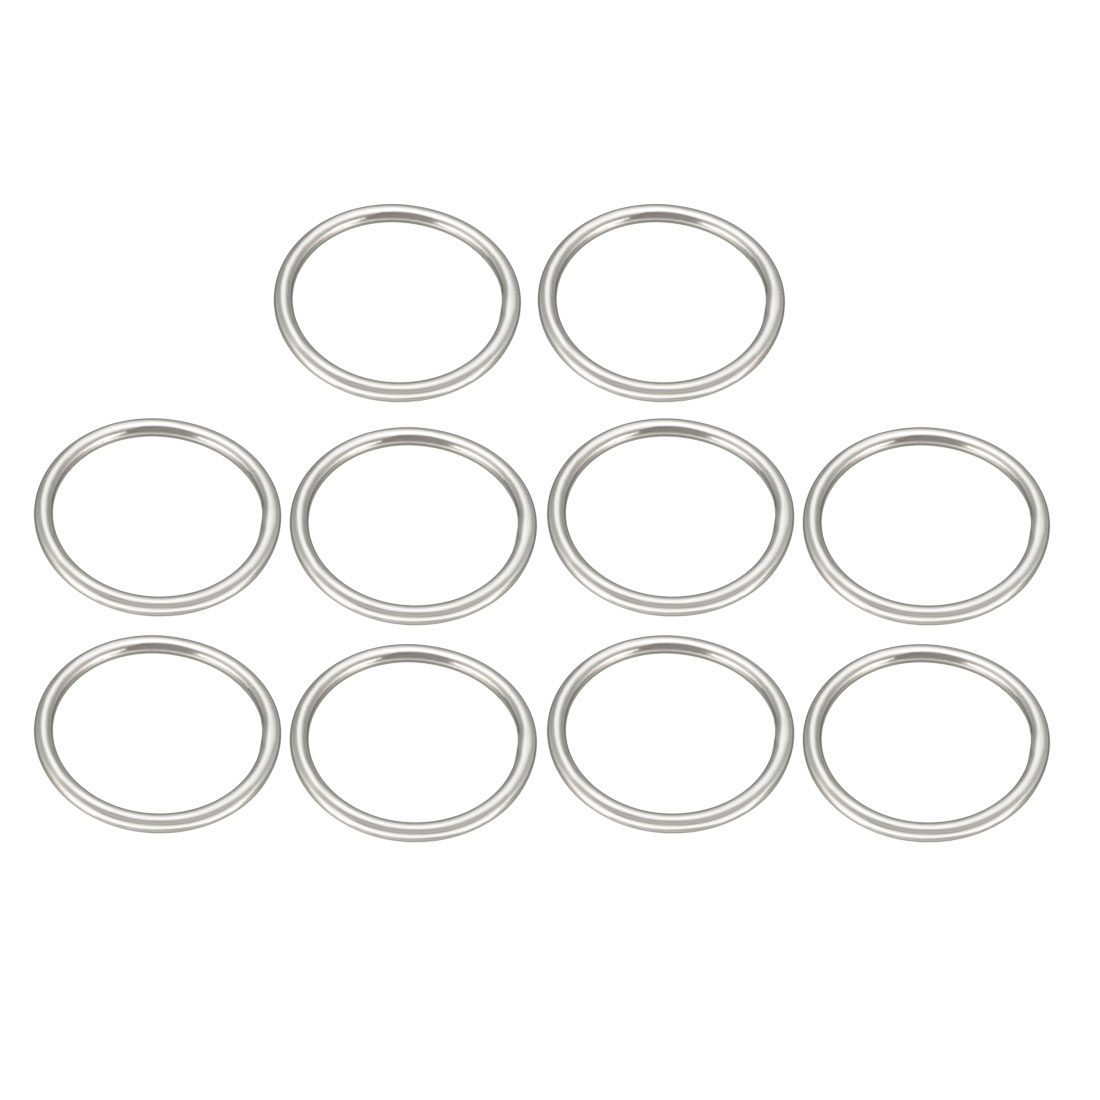 Uxcell 10 Pcs Multi-Purpose Metal O Ring Buckle Welded 37mm X 31mm X 3mm For Hardware Bags Ring Hand DIY Accessories